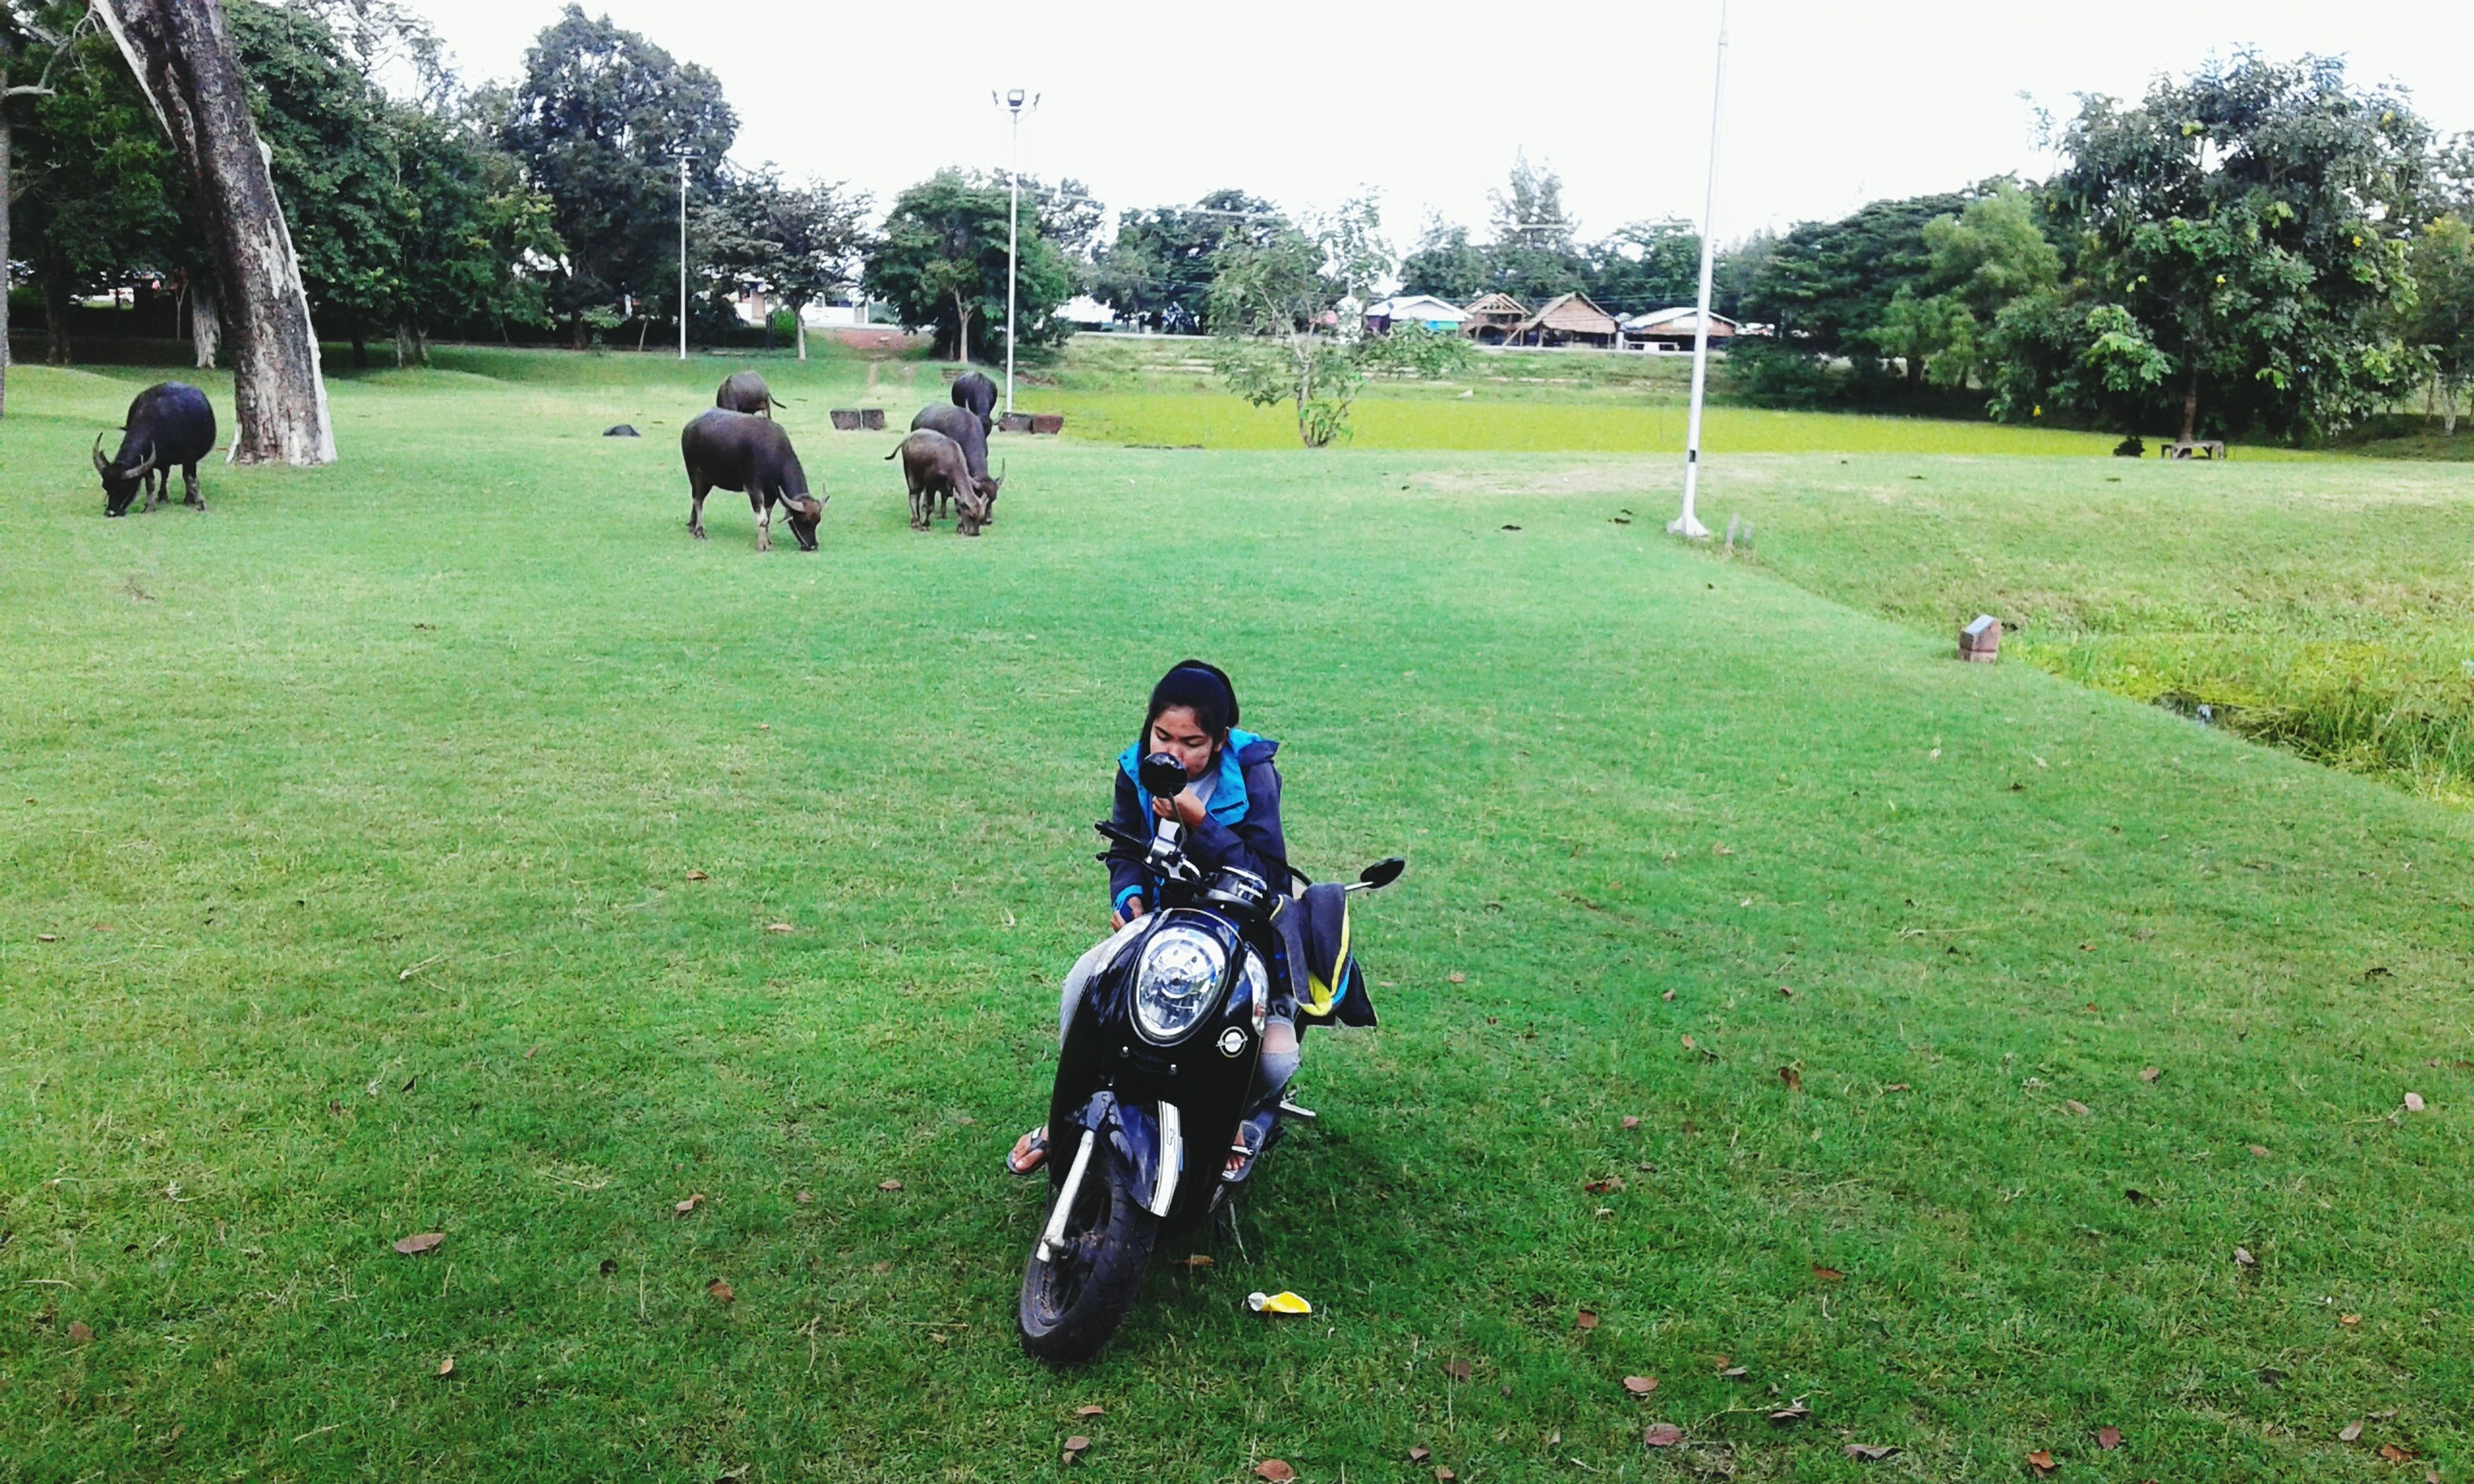 grass, field, leisure activity, lifestyles, animal themes, green color, grassy, full length, tree, domestic animals, men, riding, mammal, horse, nature, casual clothing, park - man made space, landscape